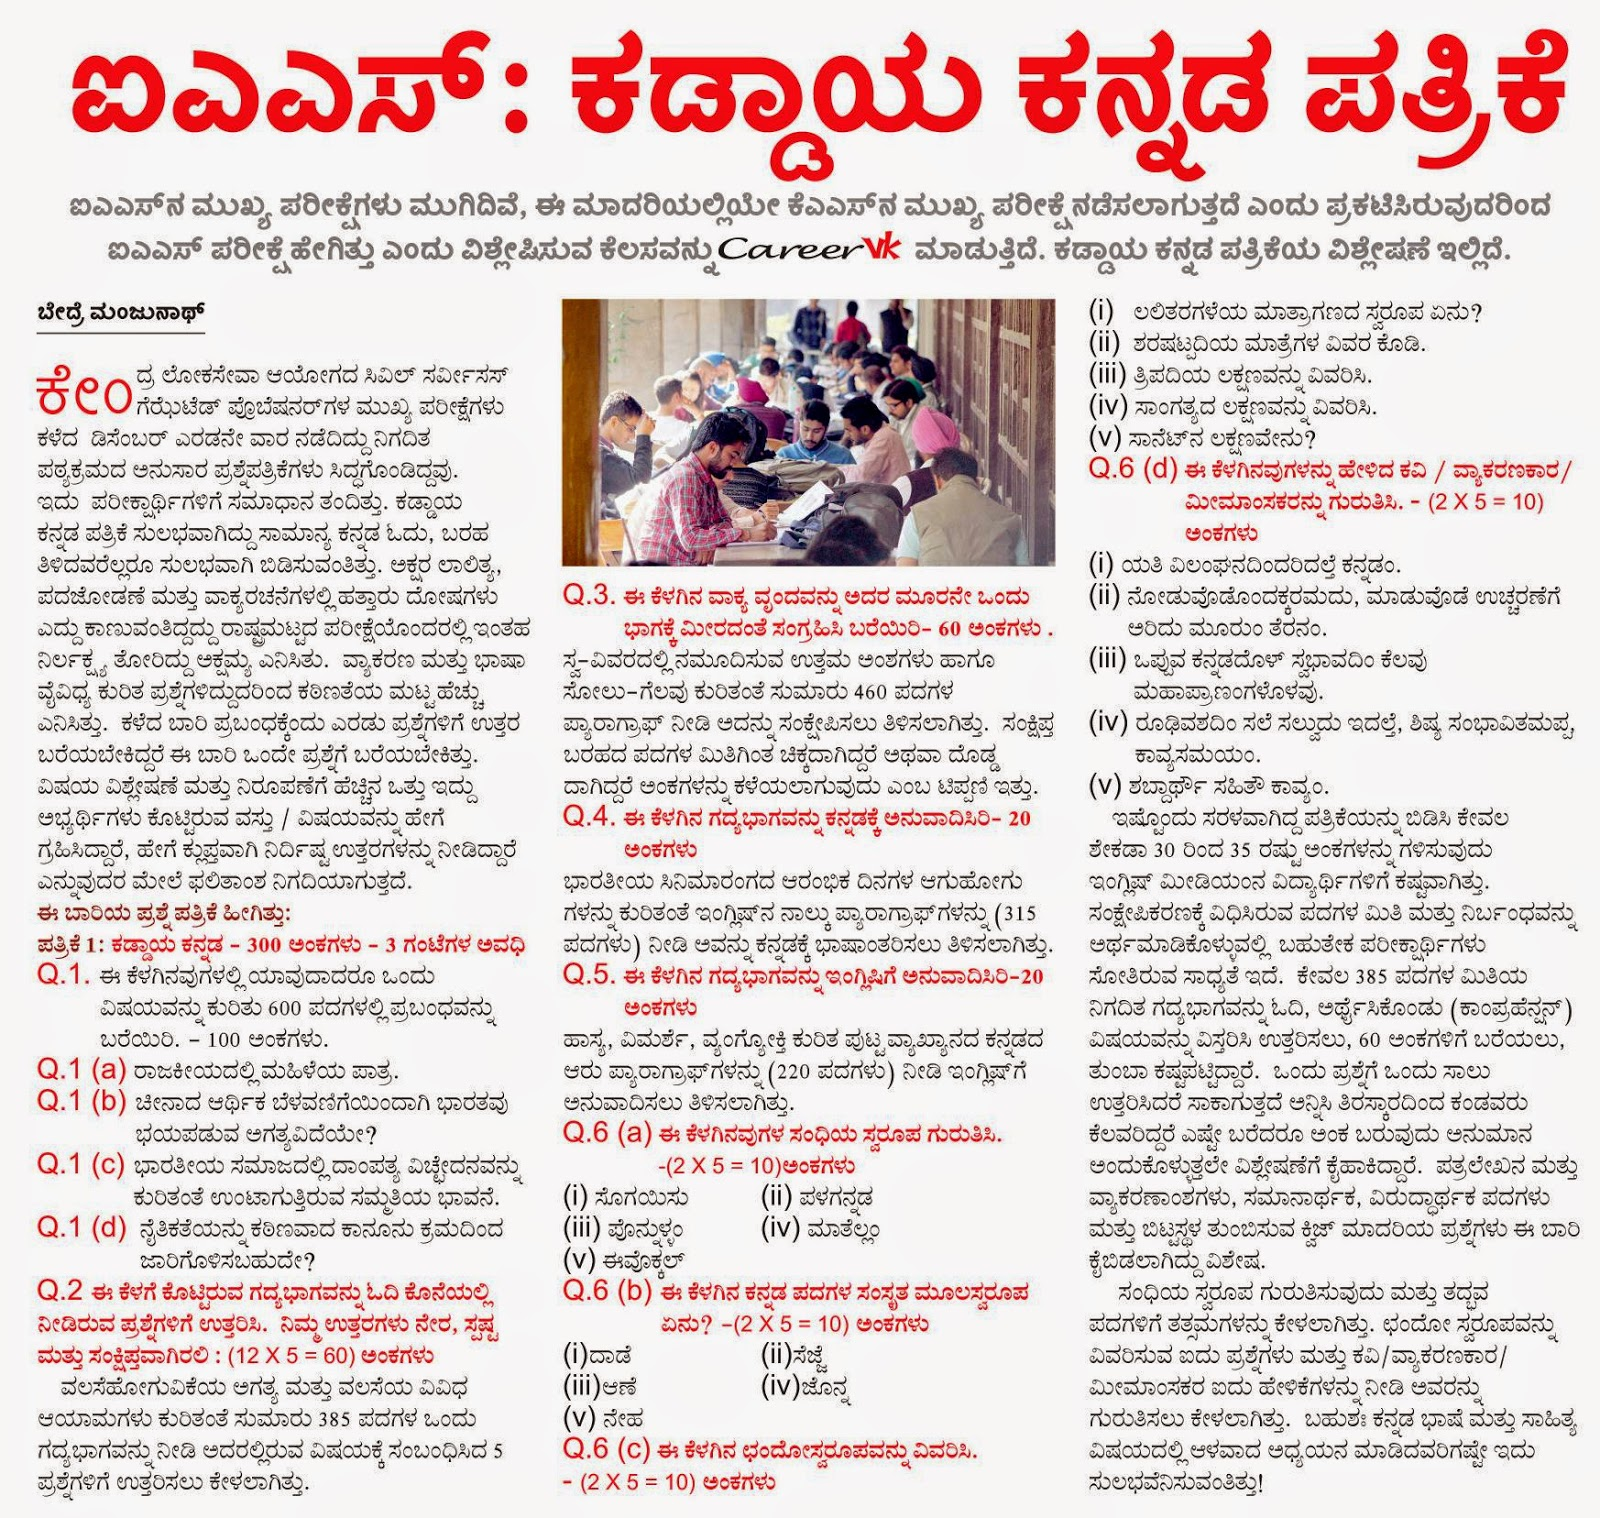 Essay on safety in kannada language - Essay on safety in - English